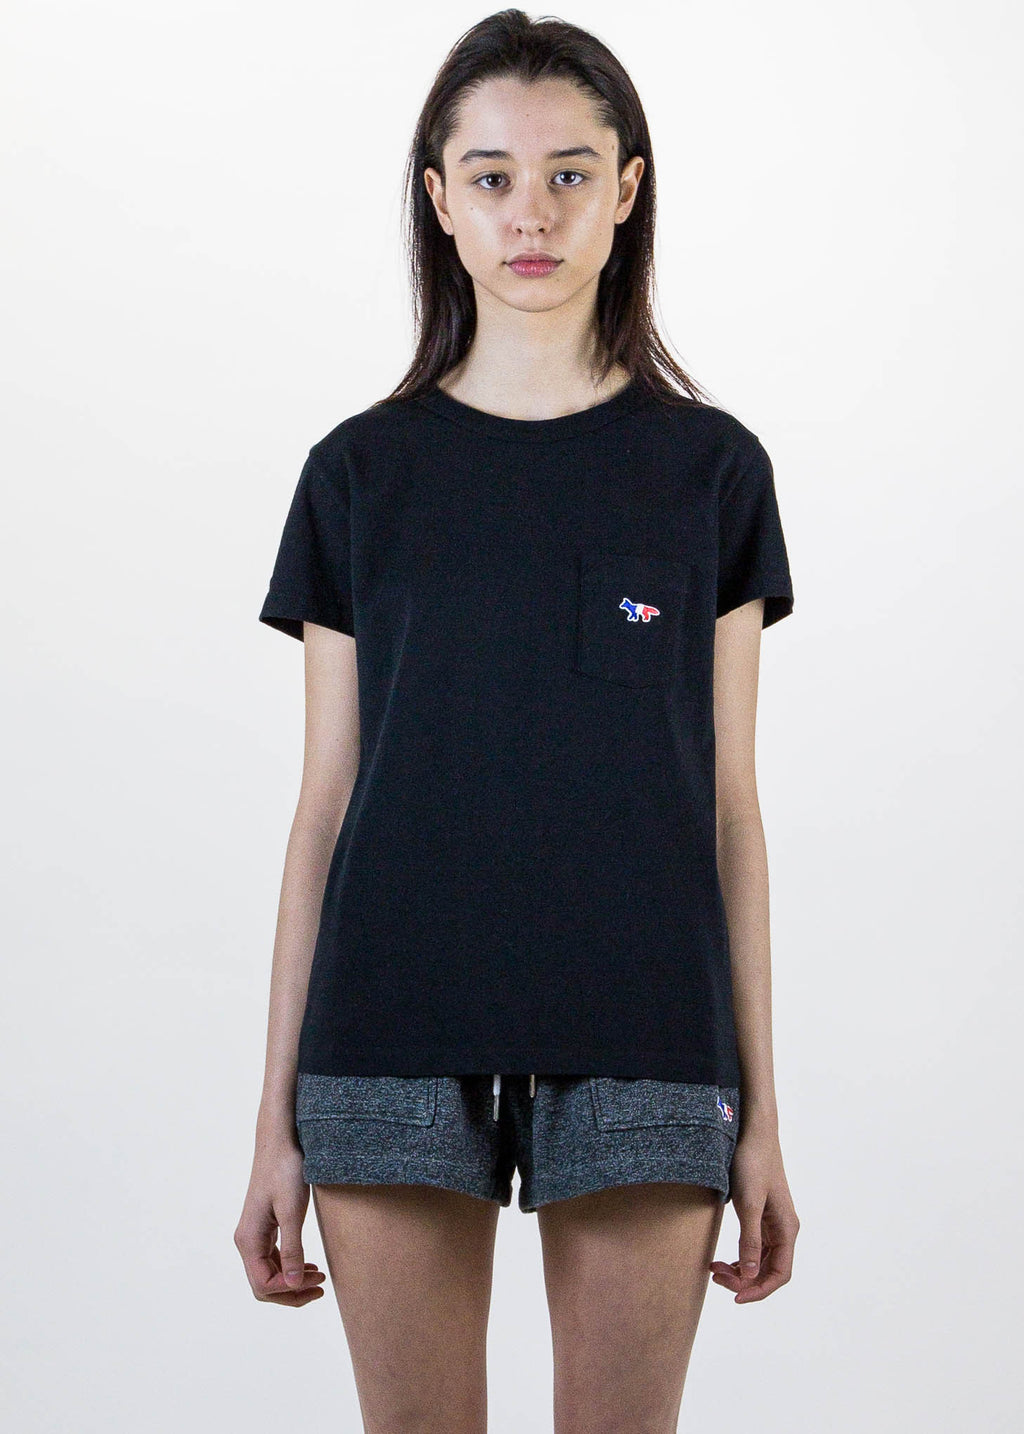 Black T-Shirt Tricolor Patch